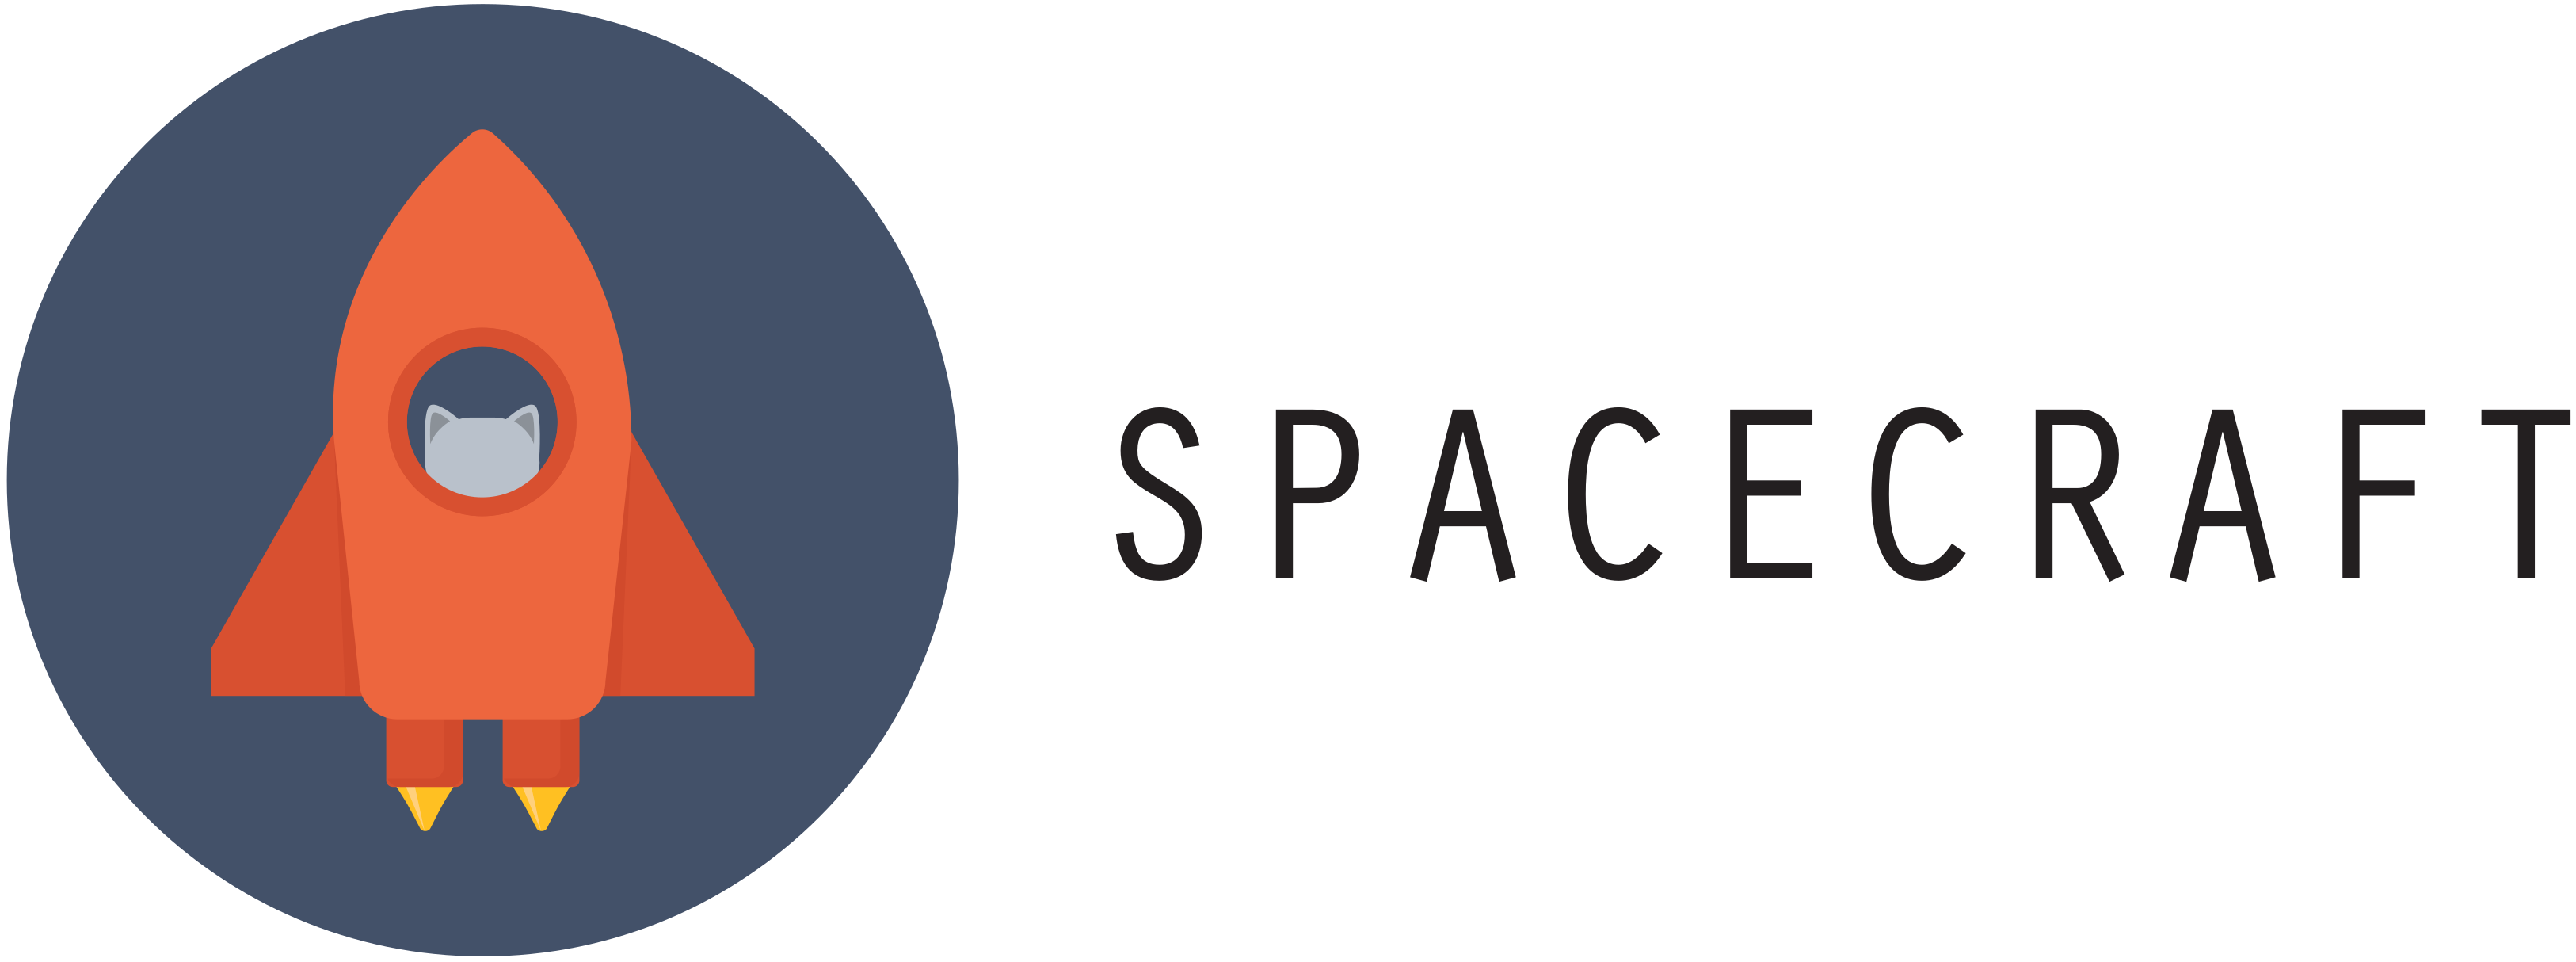 spacecraft-logo